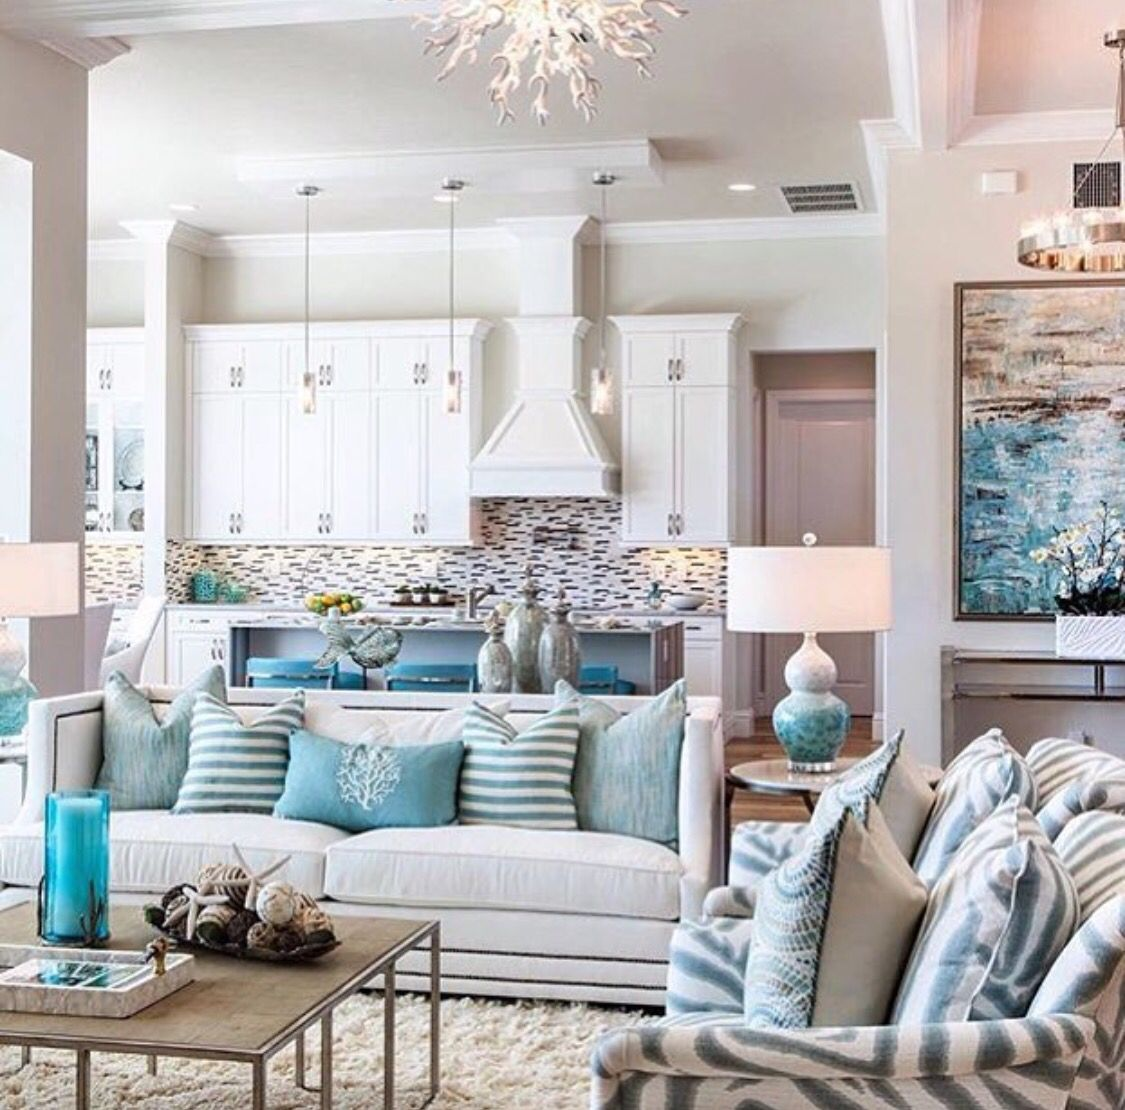 Beach Color Palette For House: Shore House Inspo